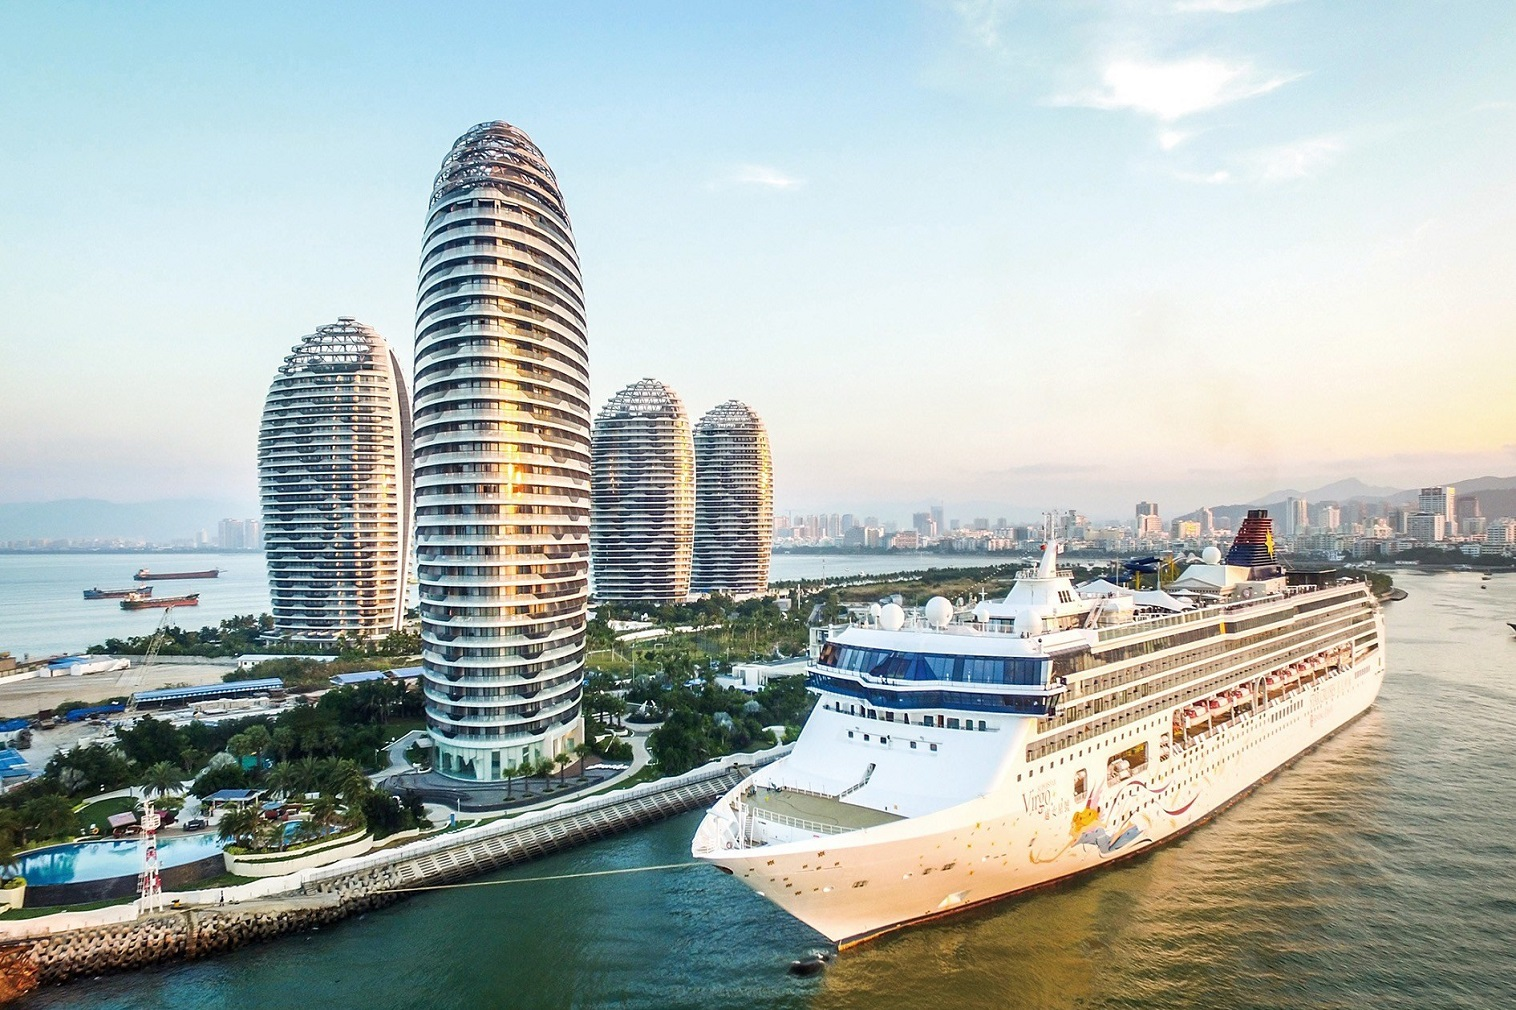 Sanya, the popular resort city located on the southern tip of Hainan Island, is emerging as the hottest international tourism destination of 2021 with boundless new opportunities for work, travel and play.